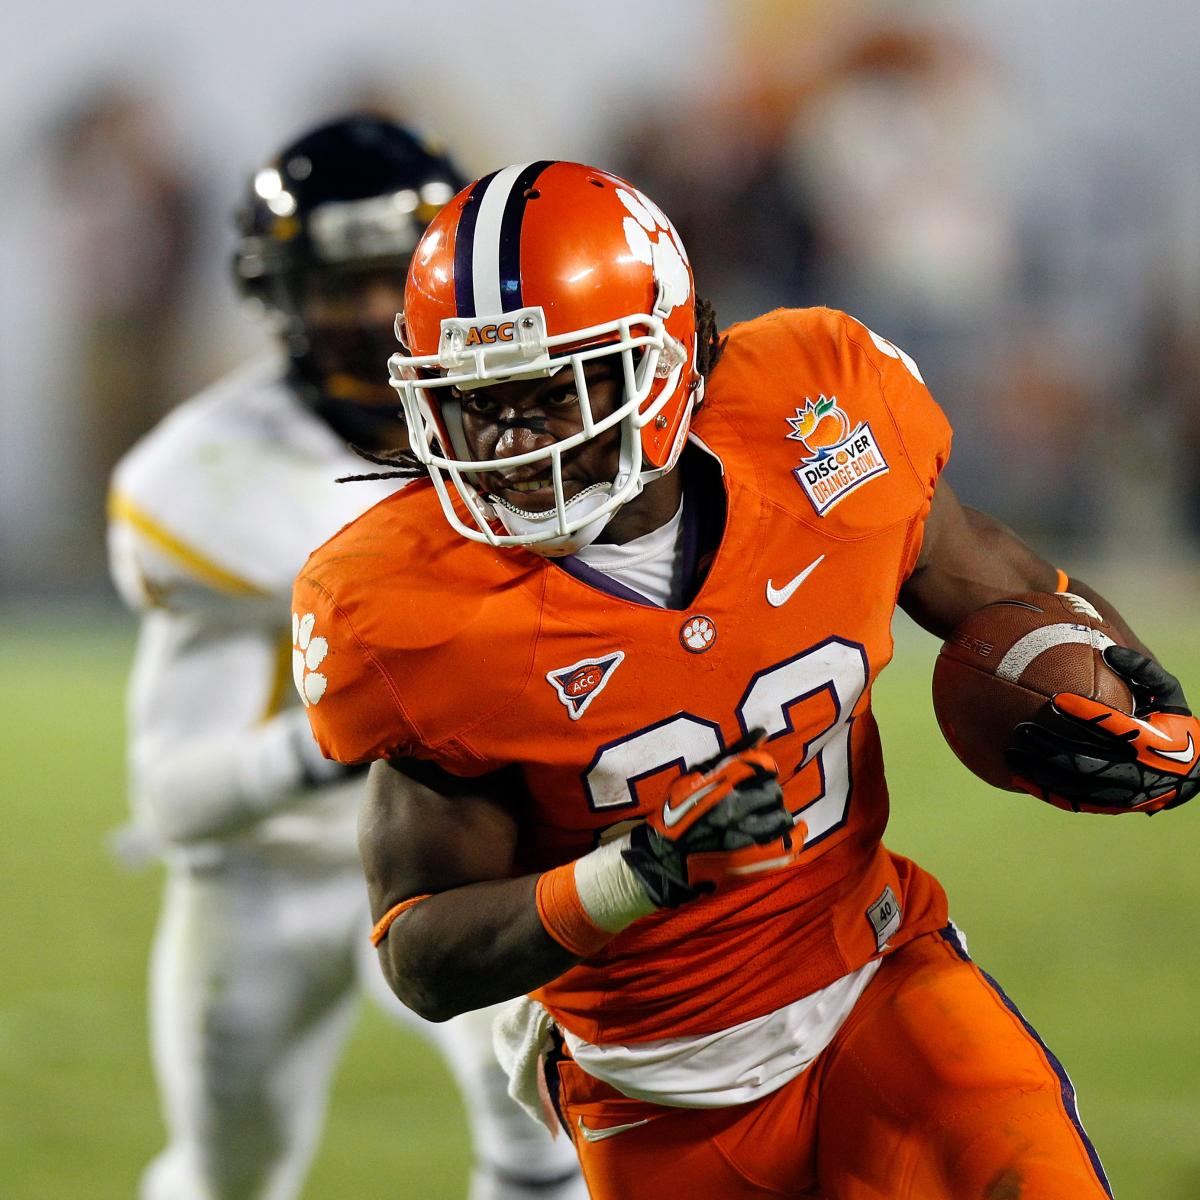 Clemson Football: 2012 Season Could Hinge on Tigers ...